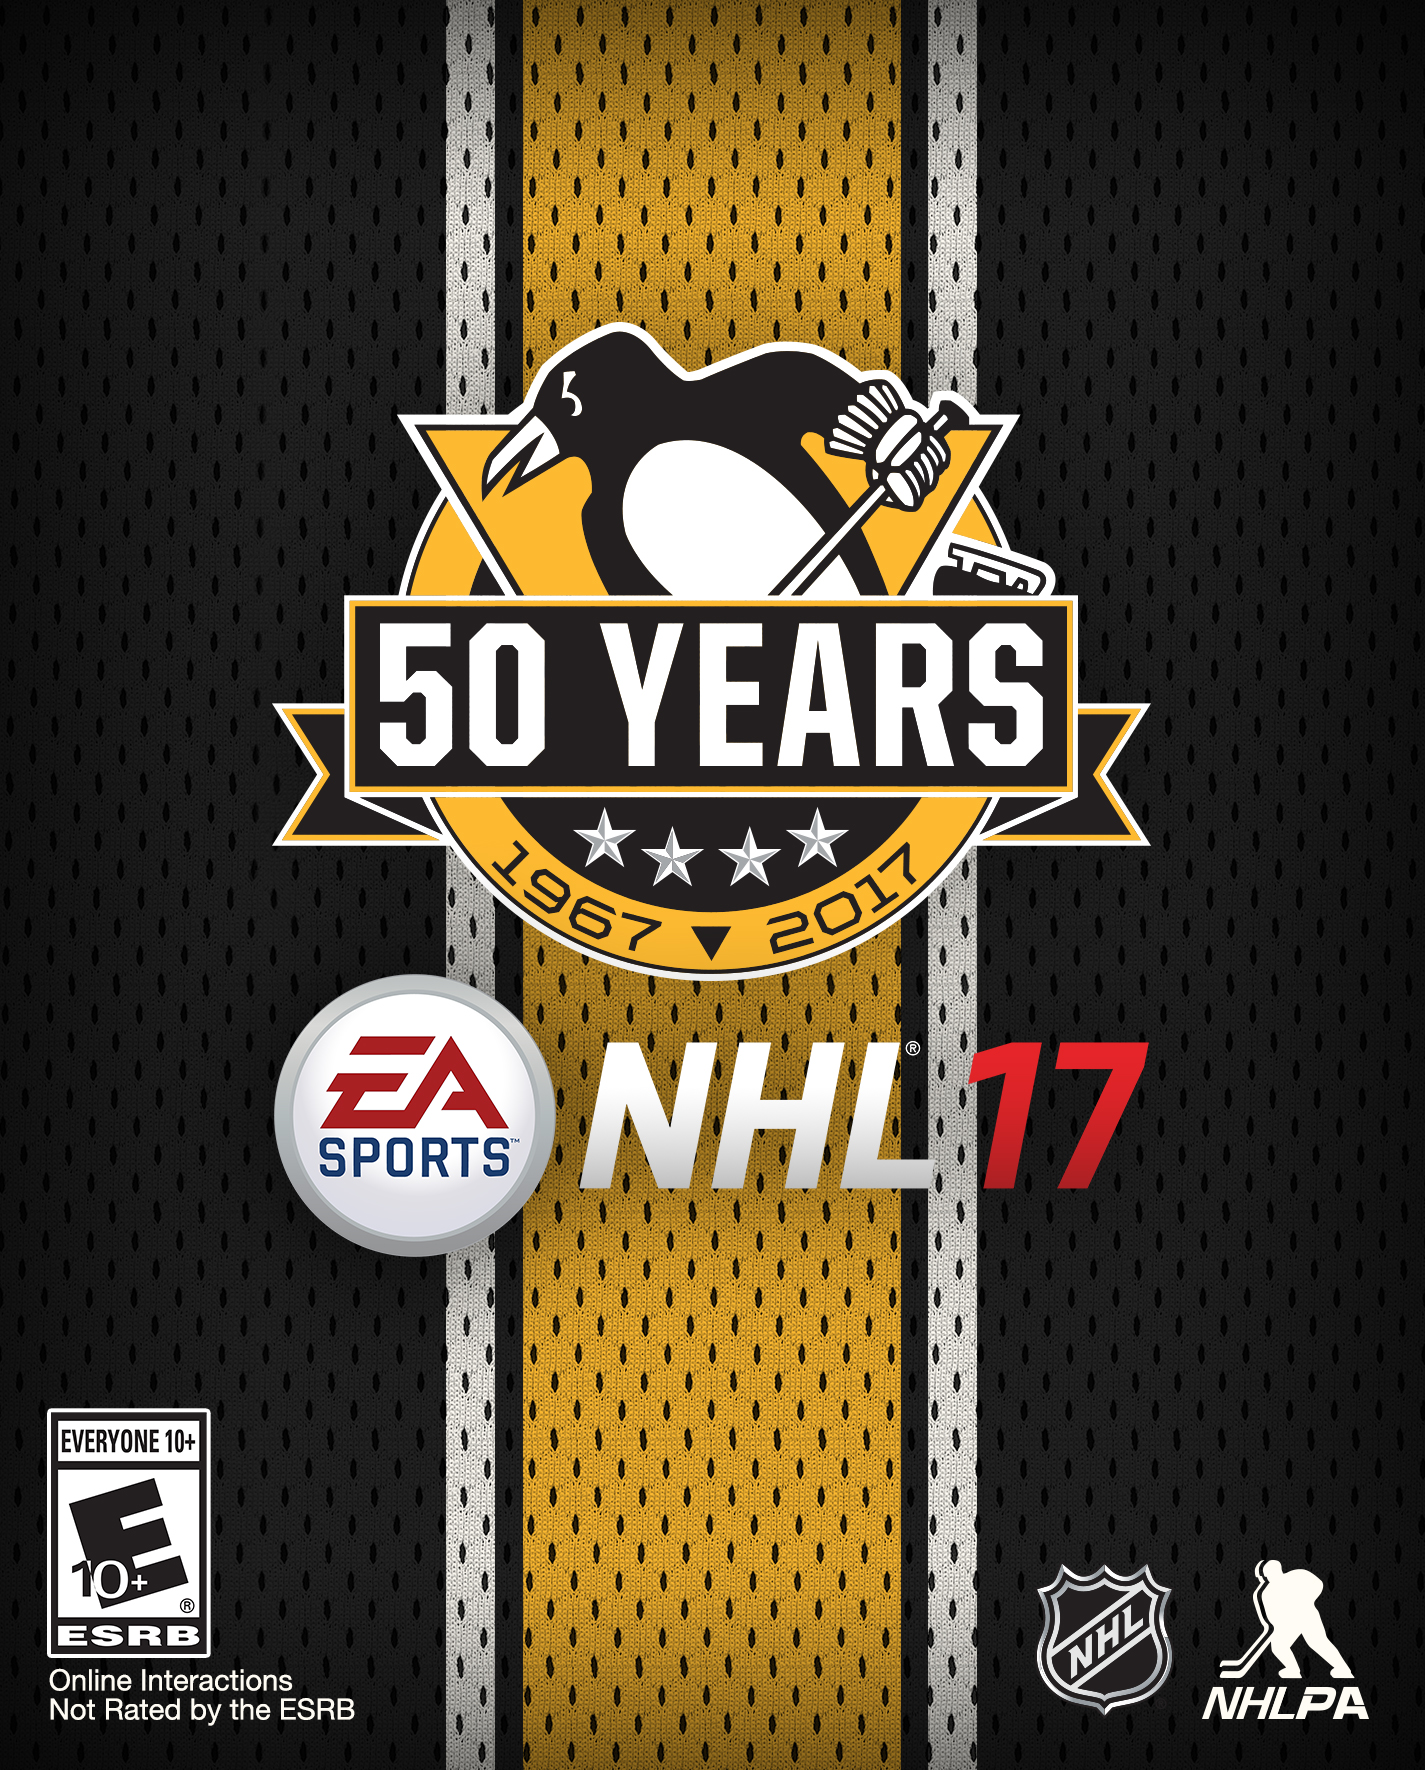 EASports_NHL_CustomCover_v3_PITTSBURG.jpg